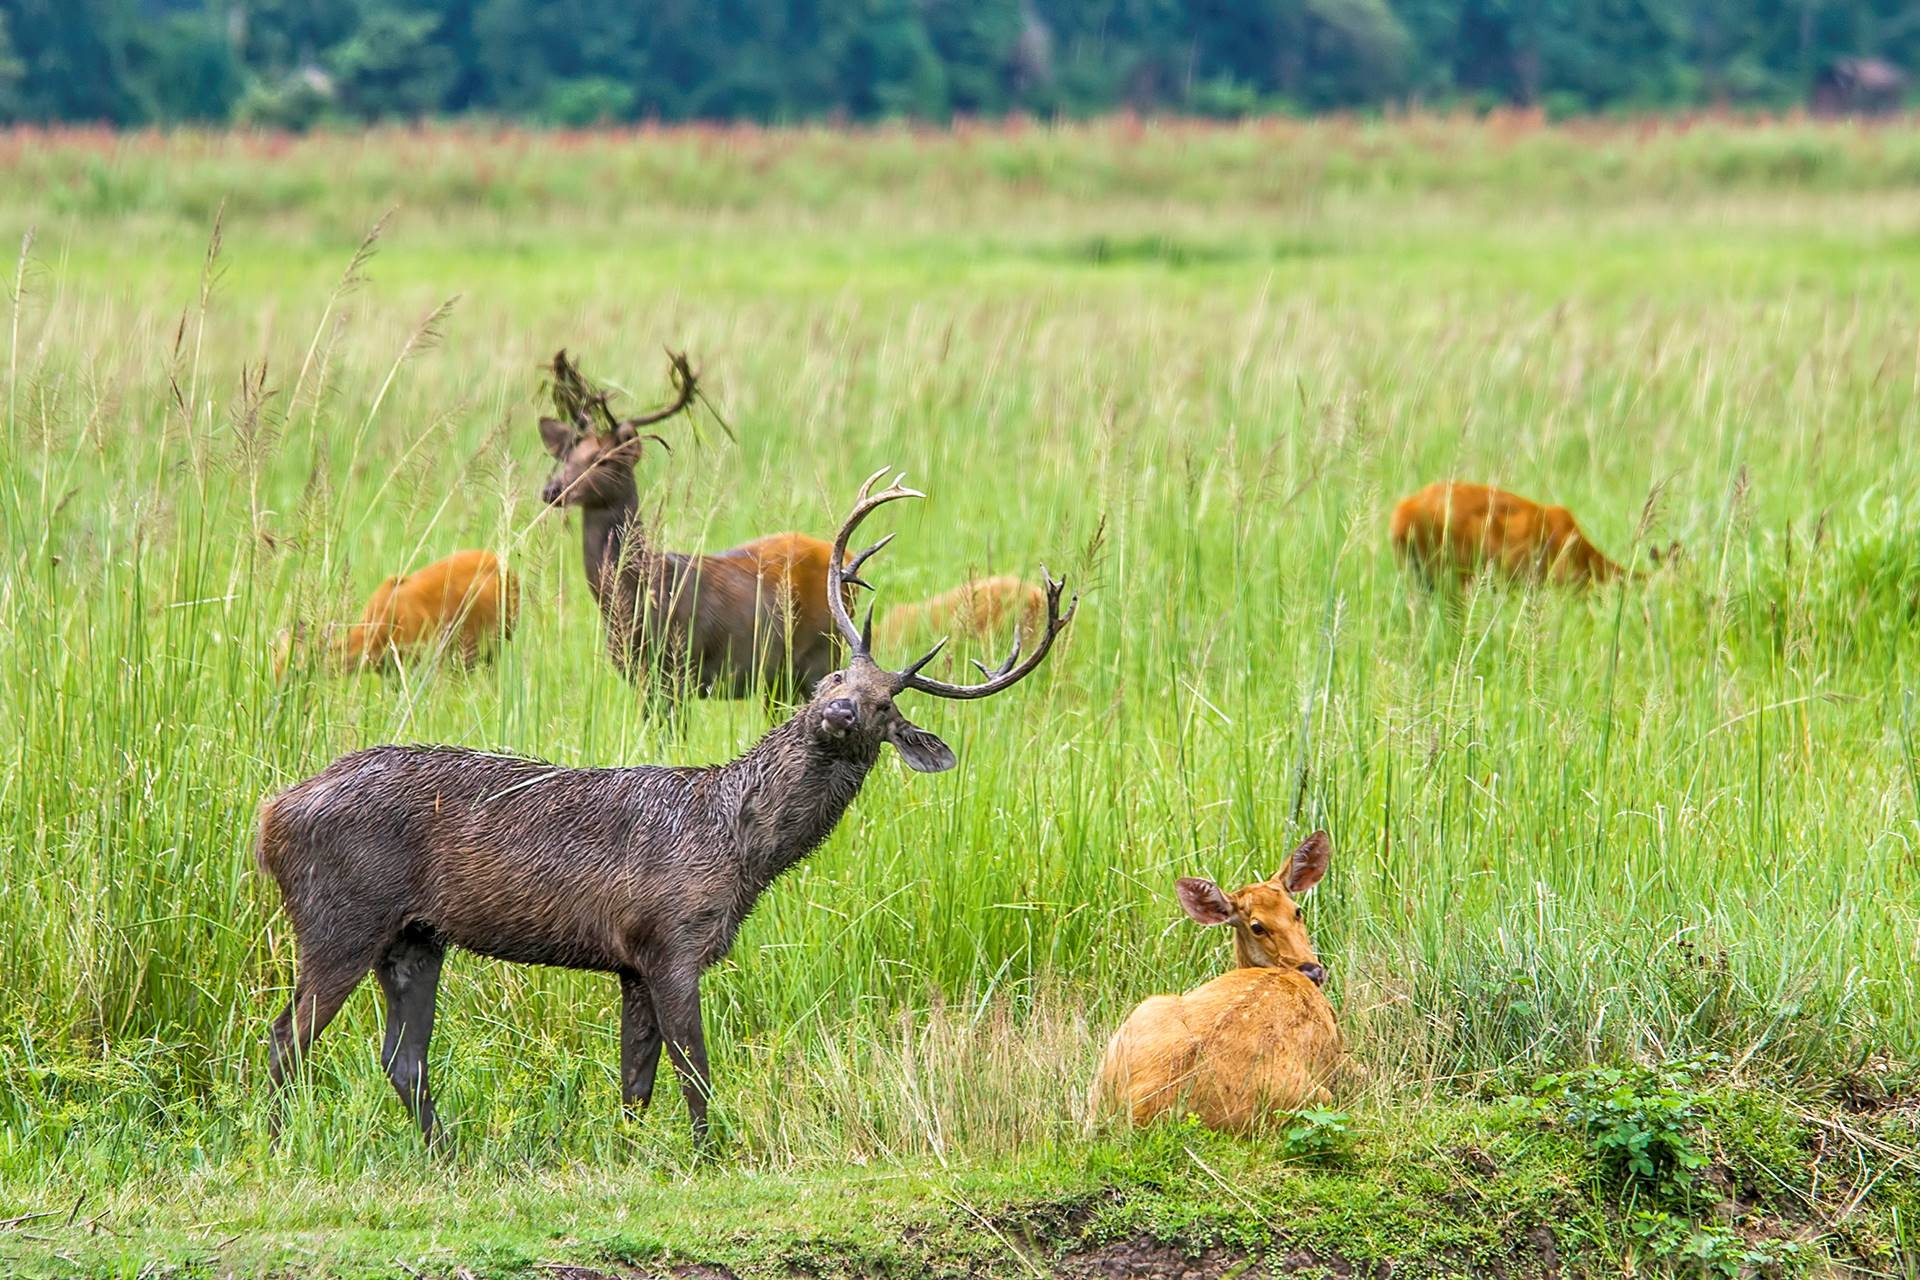 In winters, the male eastern swamp deer's reddish-golden coat turns a shabby grey-brown. Mature stags also grow a dark mane. Photo: Udayan Borthakur